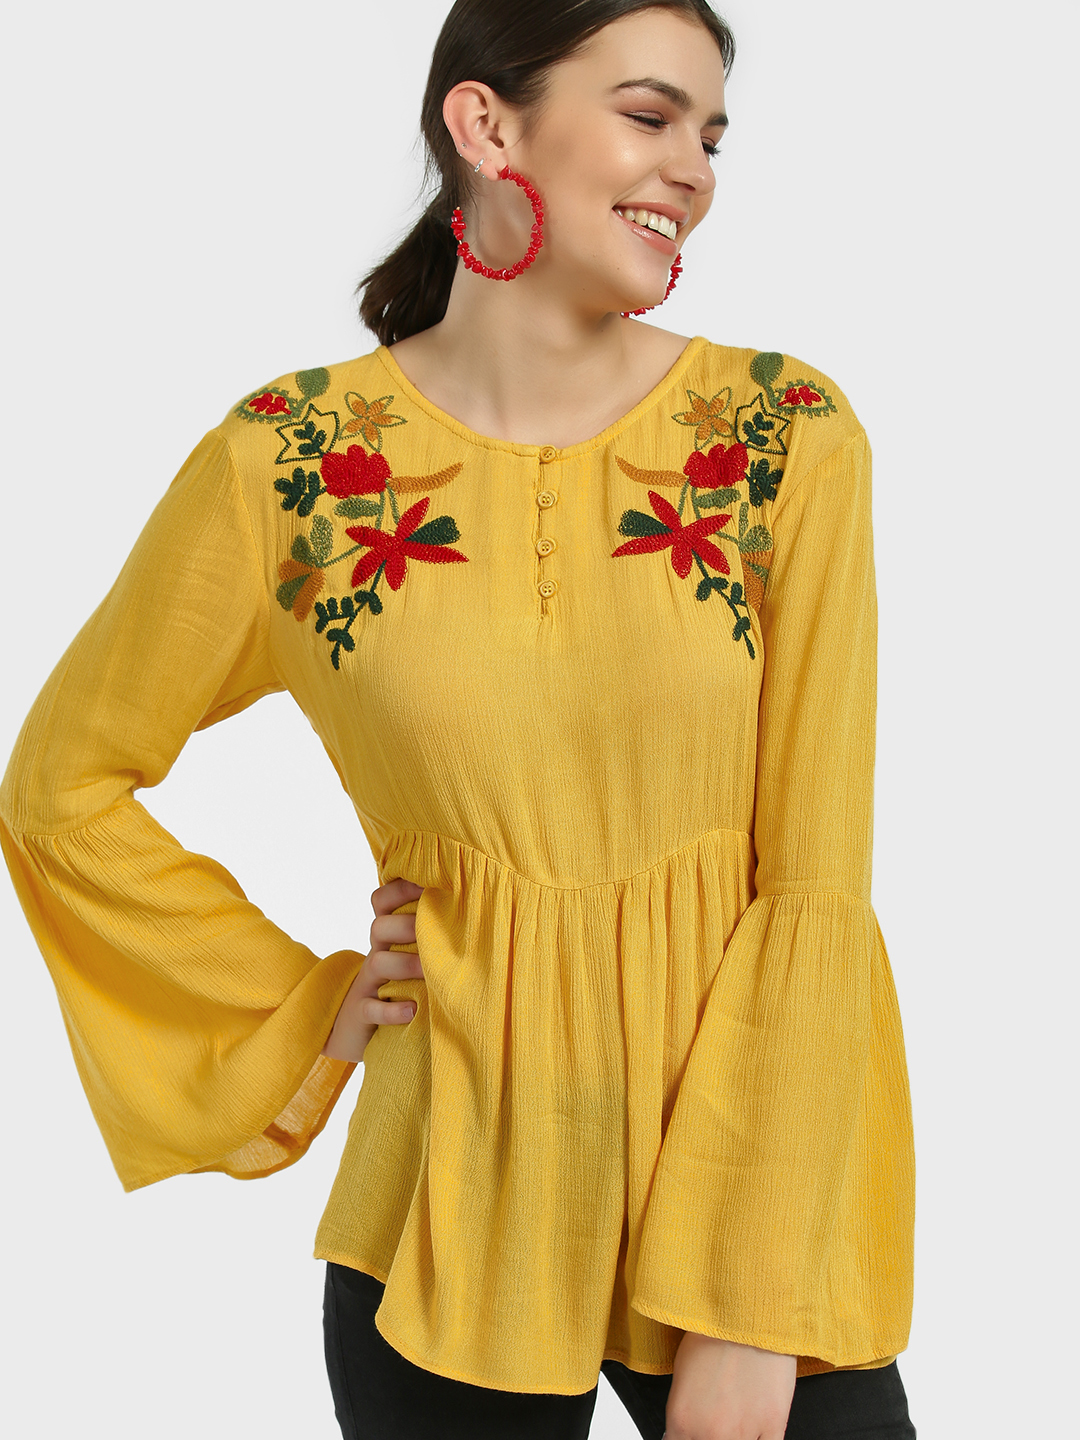 Kisscoast Yellow Floral Yoke Embroidered Blouse 1